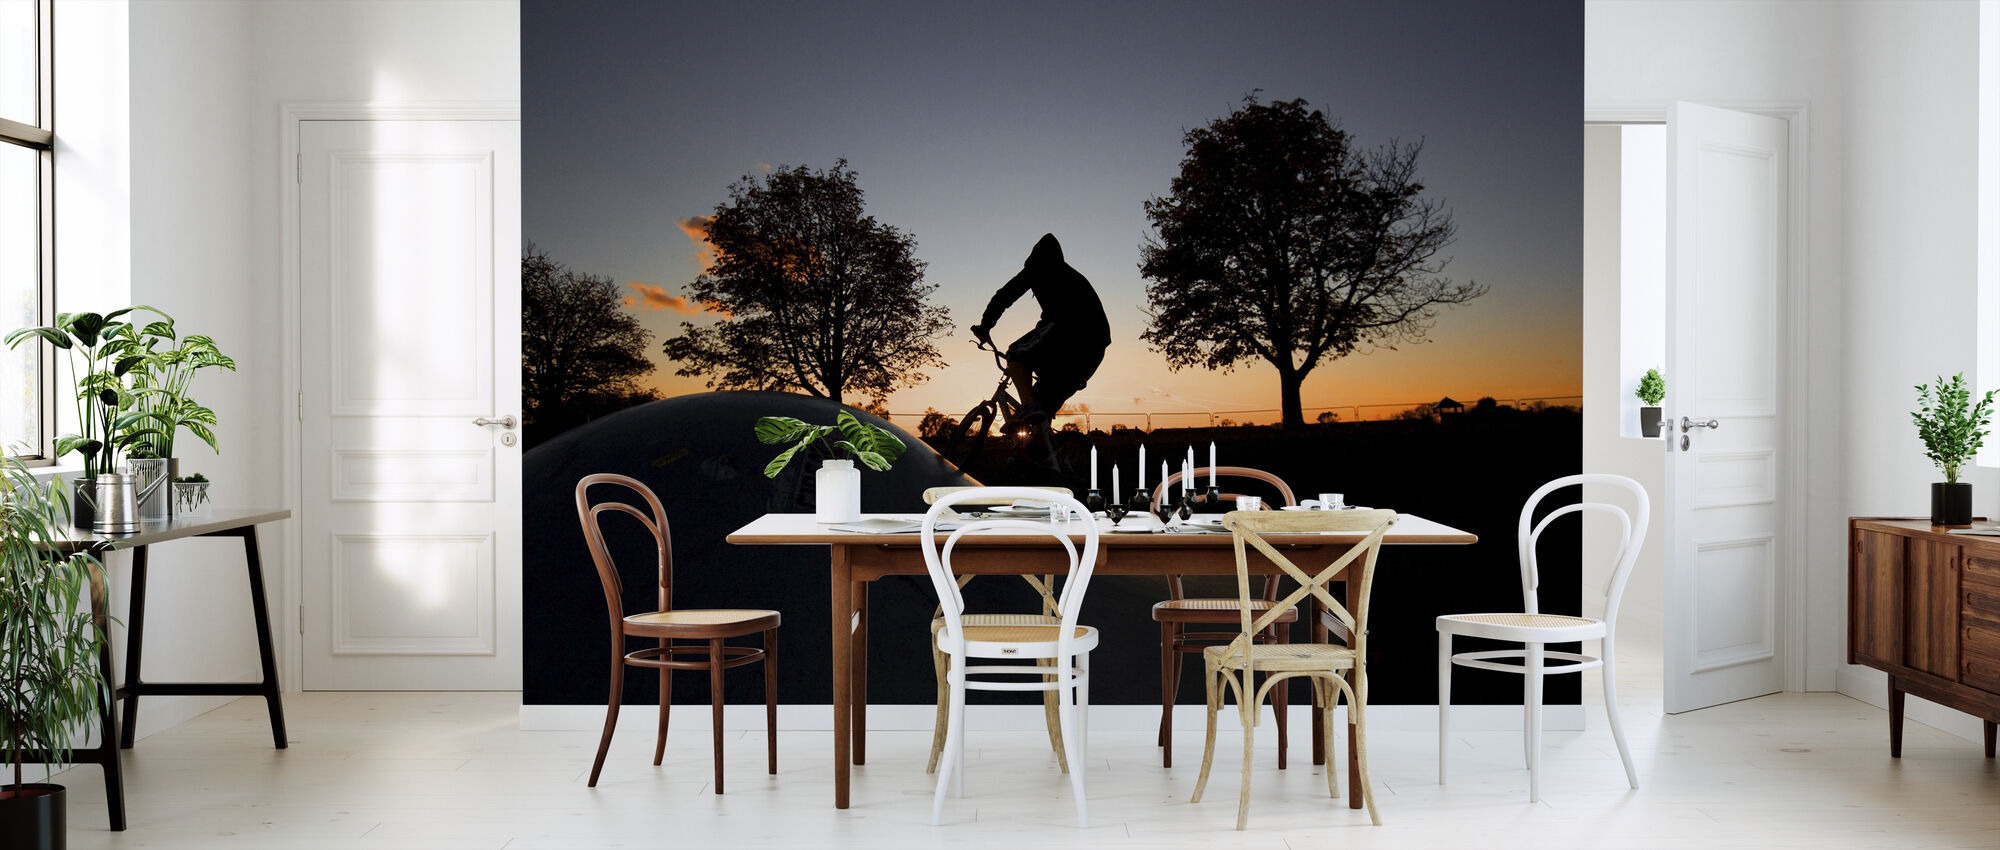 BMX Biking at Sunset - Wallpaper - Kitchen